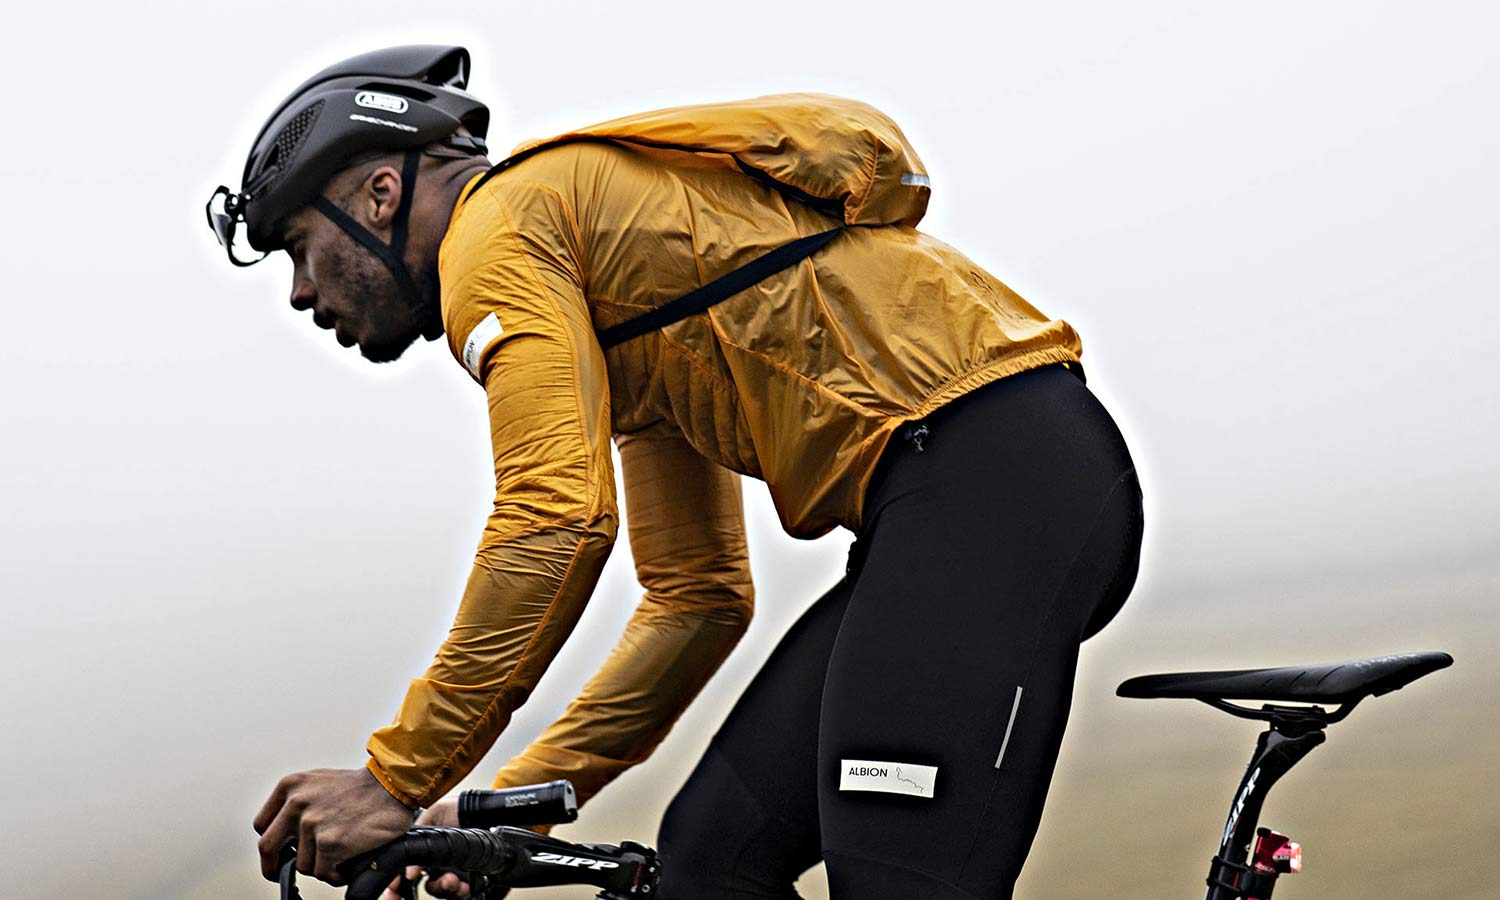 Albion Ultralight Insulated Jacket, ultra lightweight packable breathable eco cycling jacket and backpack,riding